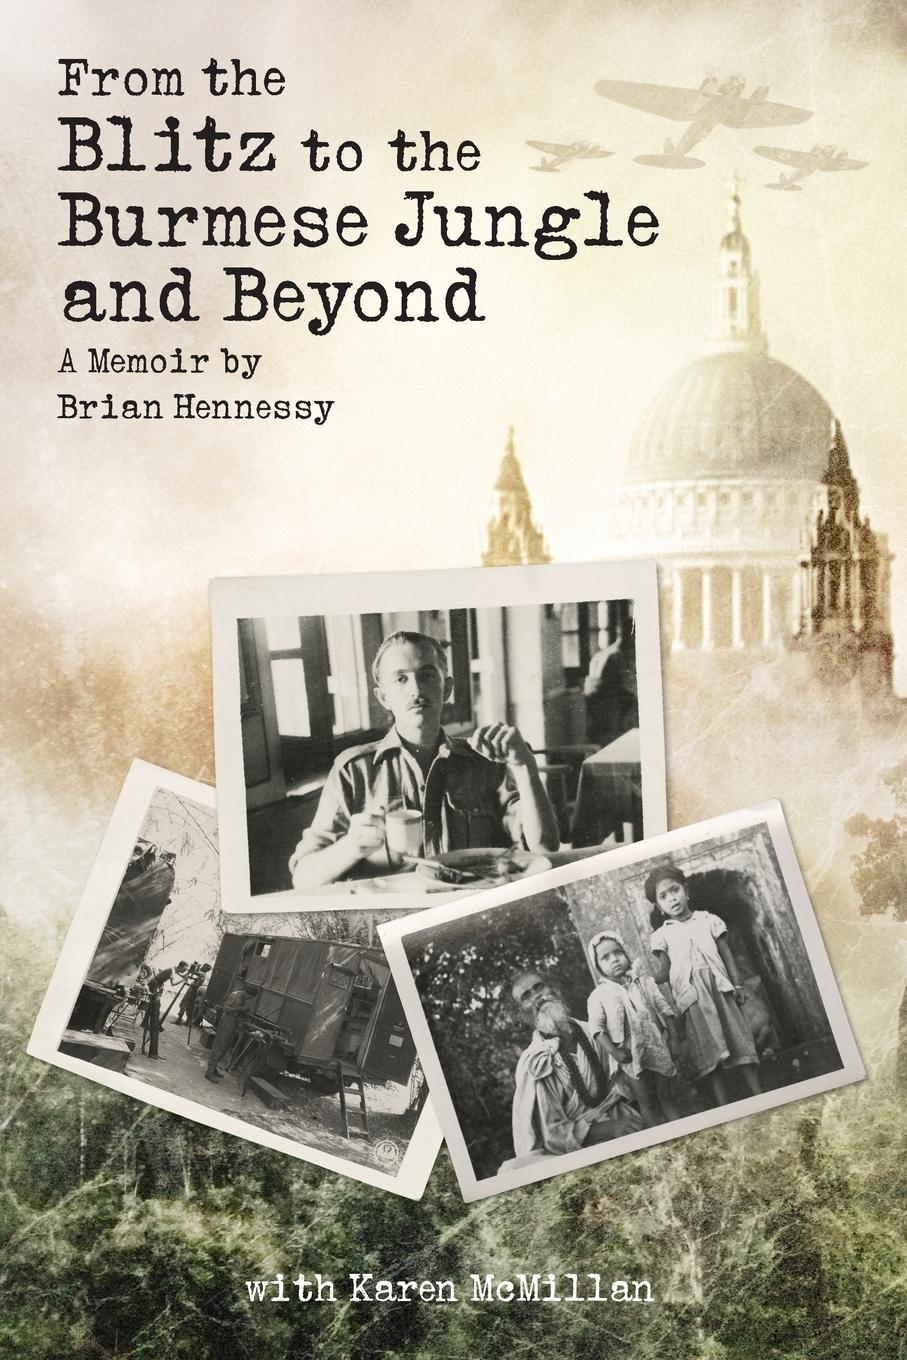 Brian Hennessy, Karen McMillan From the Blitz to the Burmese Jungle and Beyond. A World War II memoir by Brian Hennessy brian porter szucs poland in the modern world beyond martyrdom